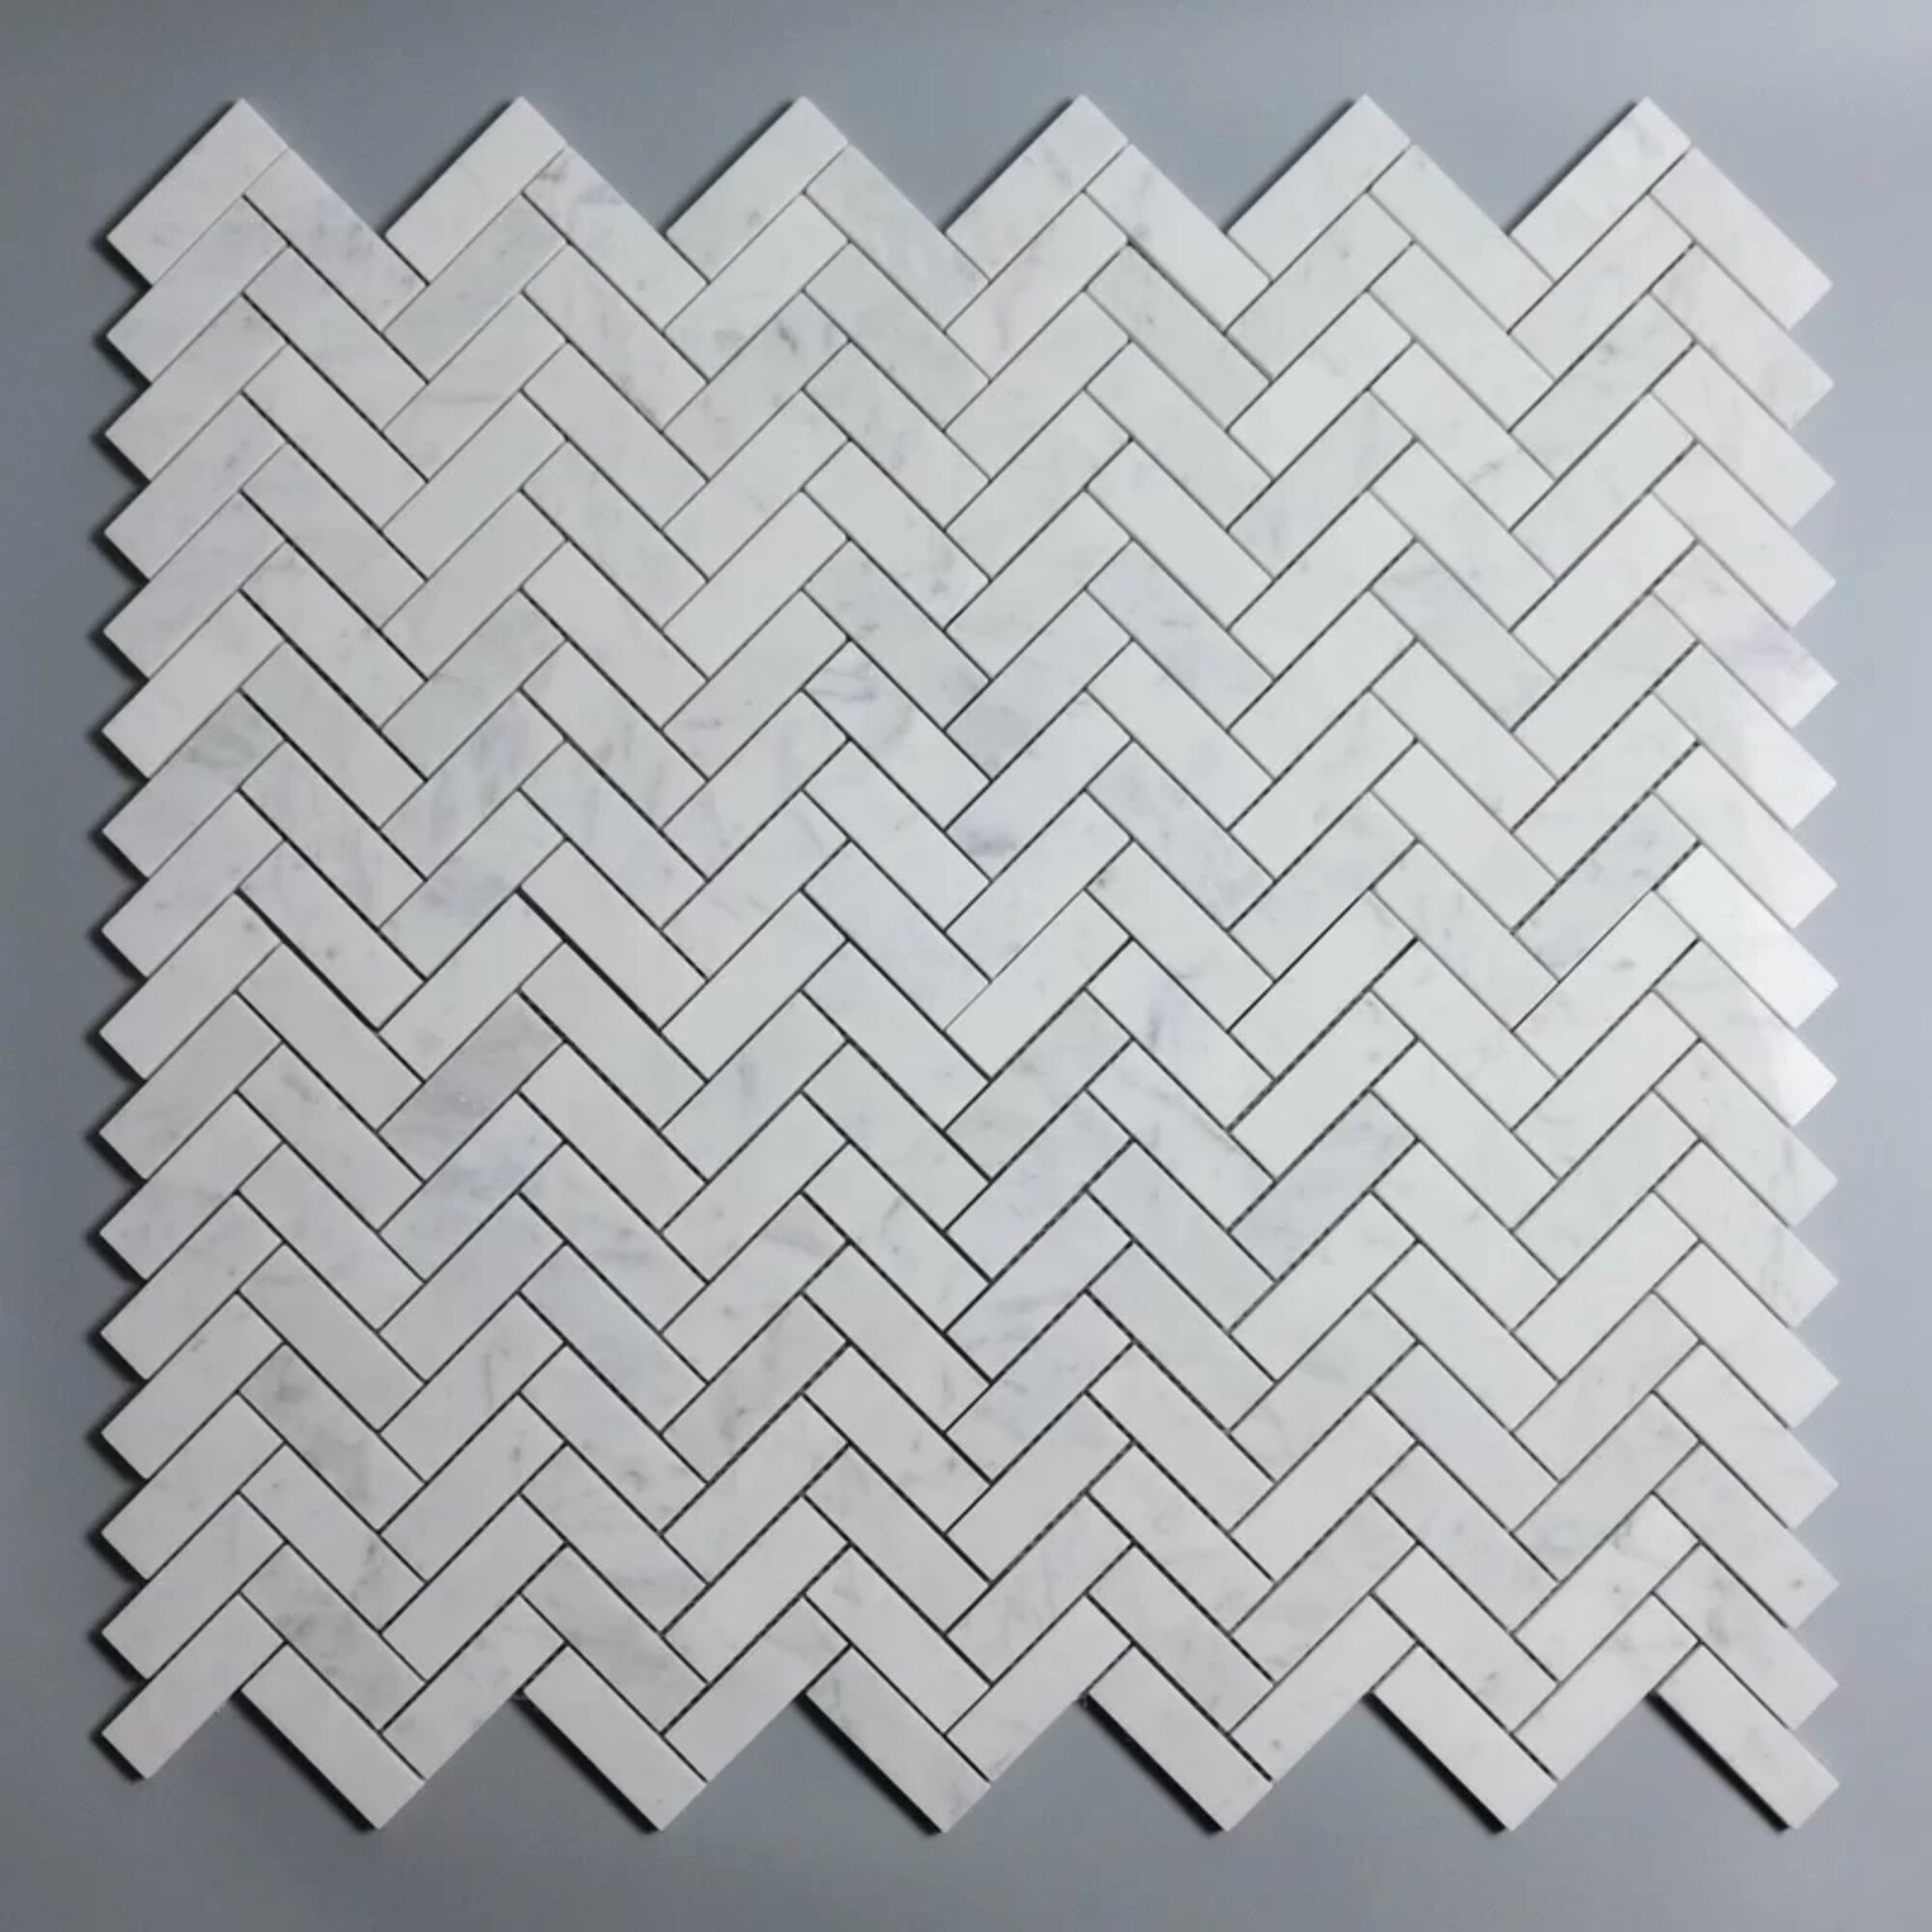 Porpora Marble Herringbone Mosaic Subway Wall Floor Tile